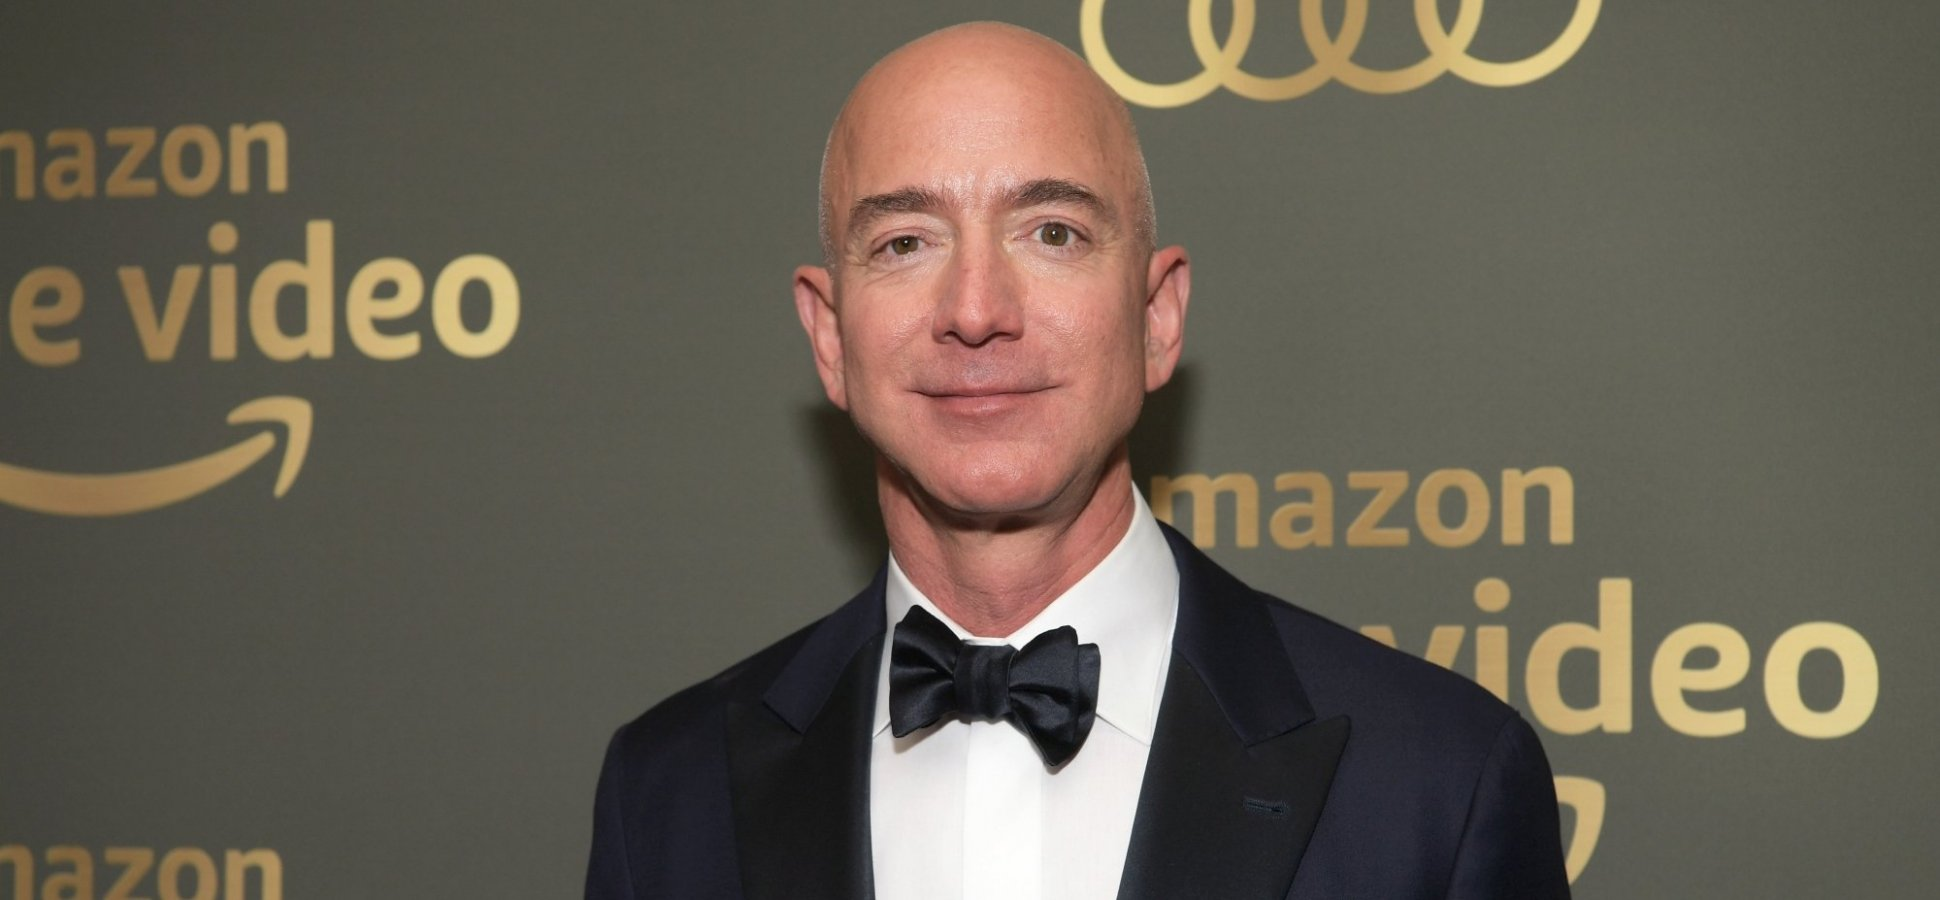 This 1 Move by Jeff Bezos Proves Amazon Is Backpedaling from Its Toxic Workplace Culture